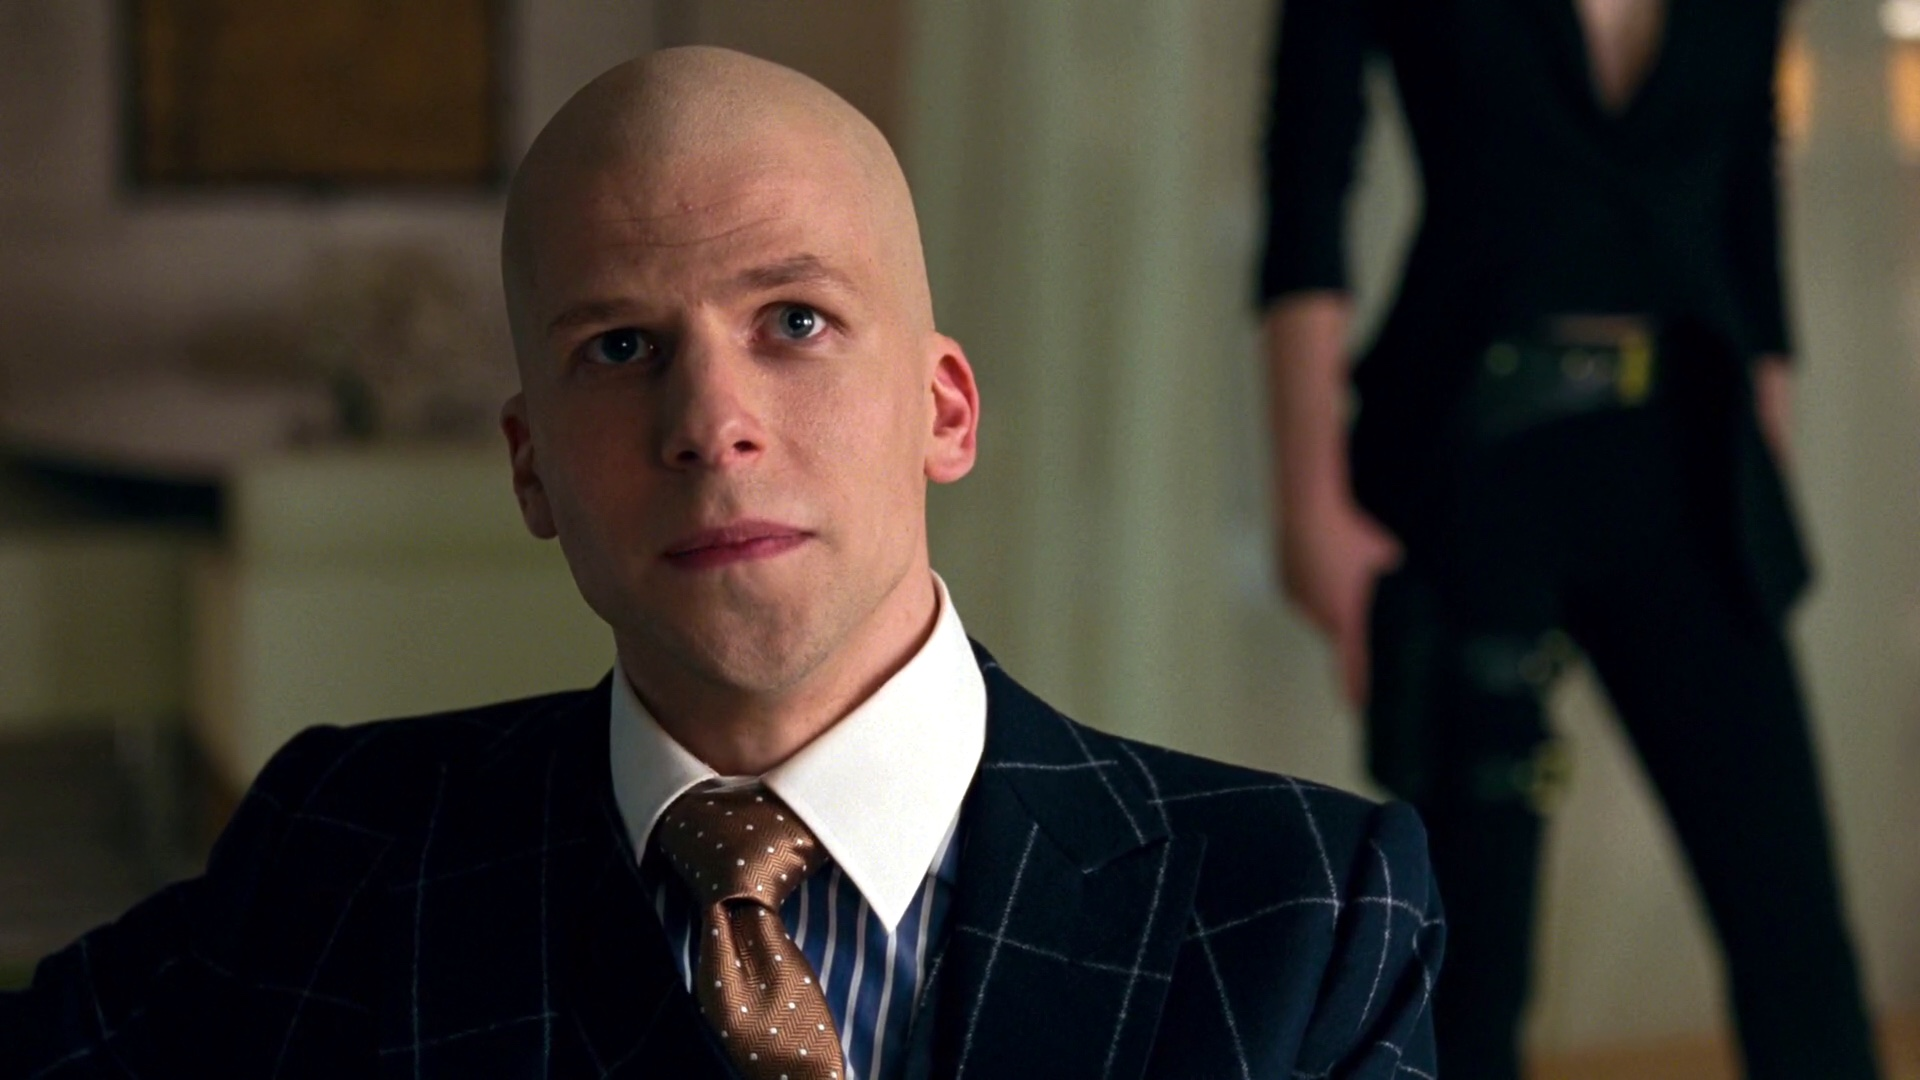 Jesse Eisenberg says no Lex Luthor scenes were cut from 'Justice League'